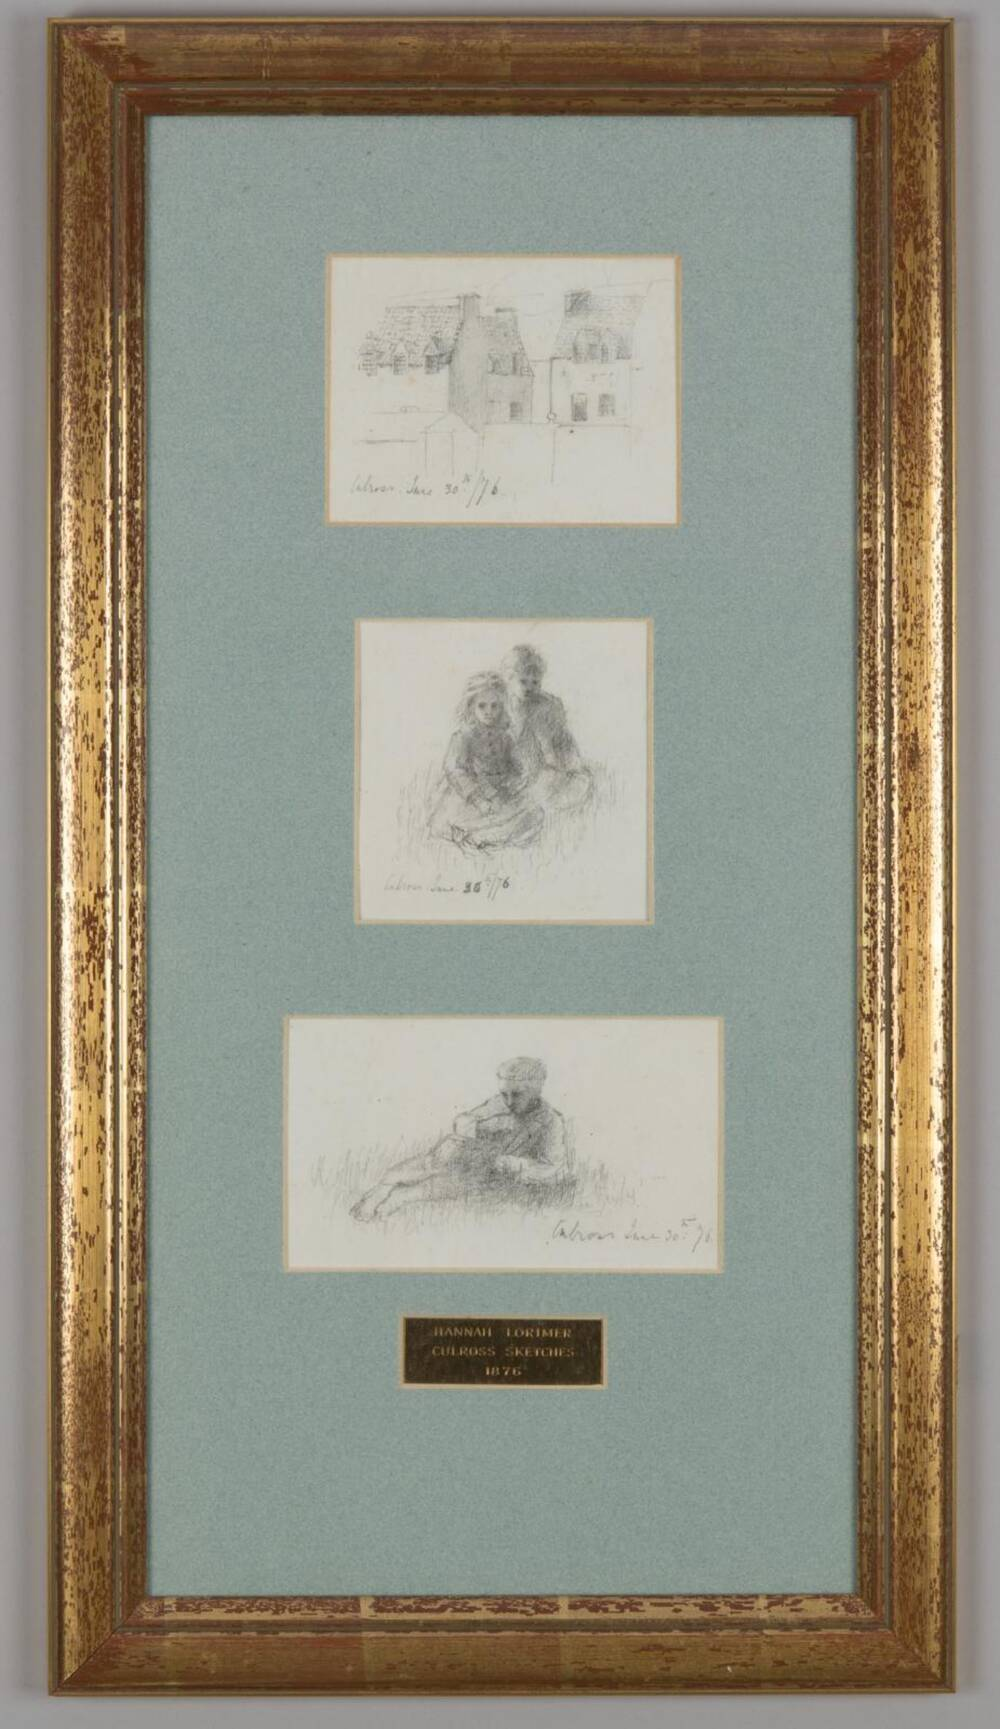 Three sketches by Hannah Lorimer, one of Culross Palace and two of children sitting in the grass, dated 1876. They're mounted on a green background inside a gold frame.